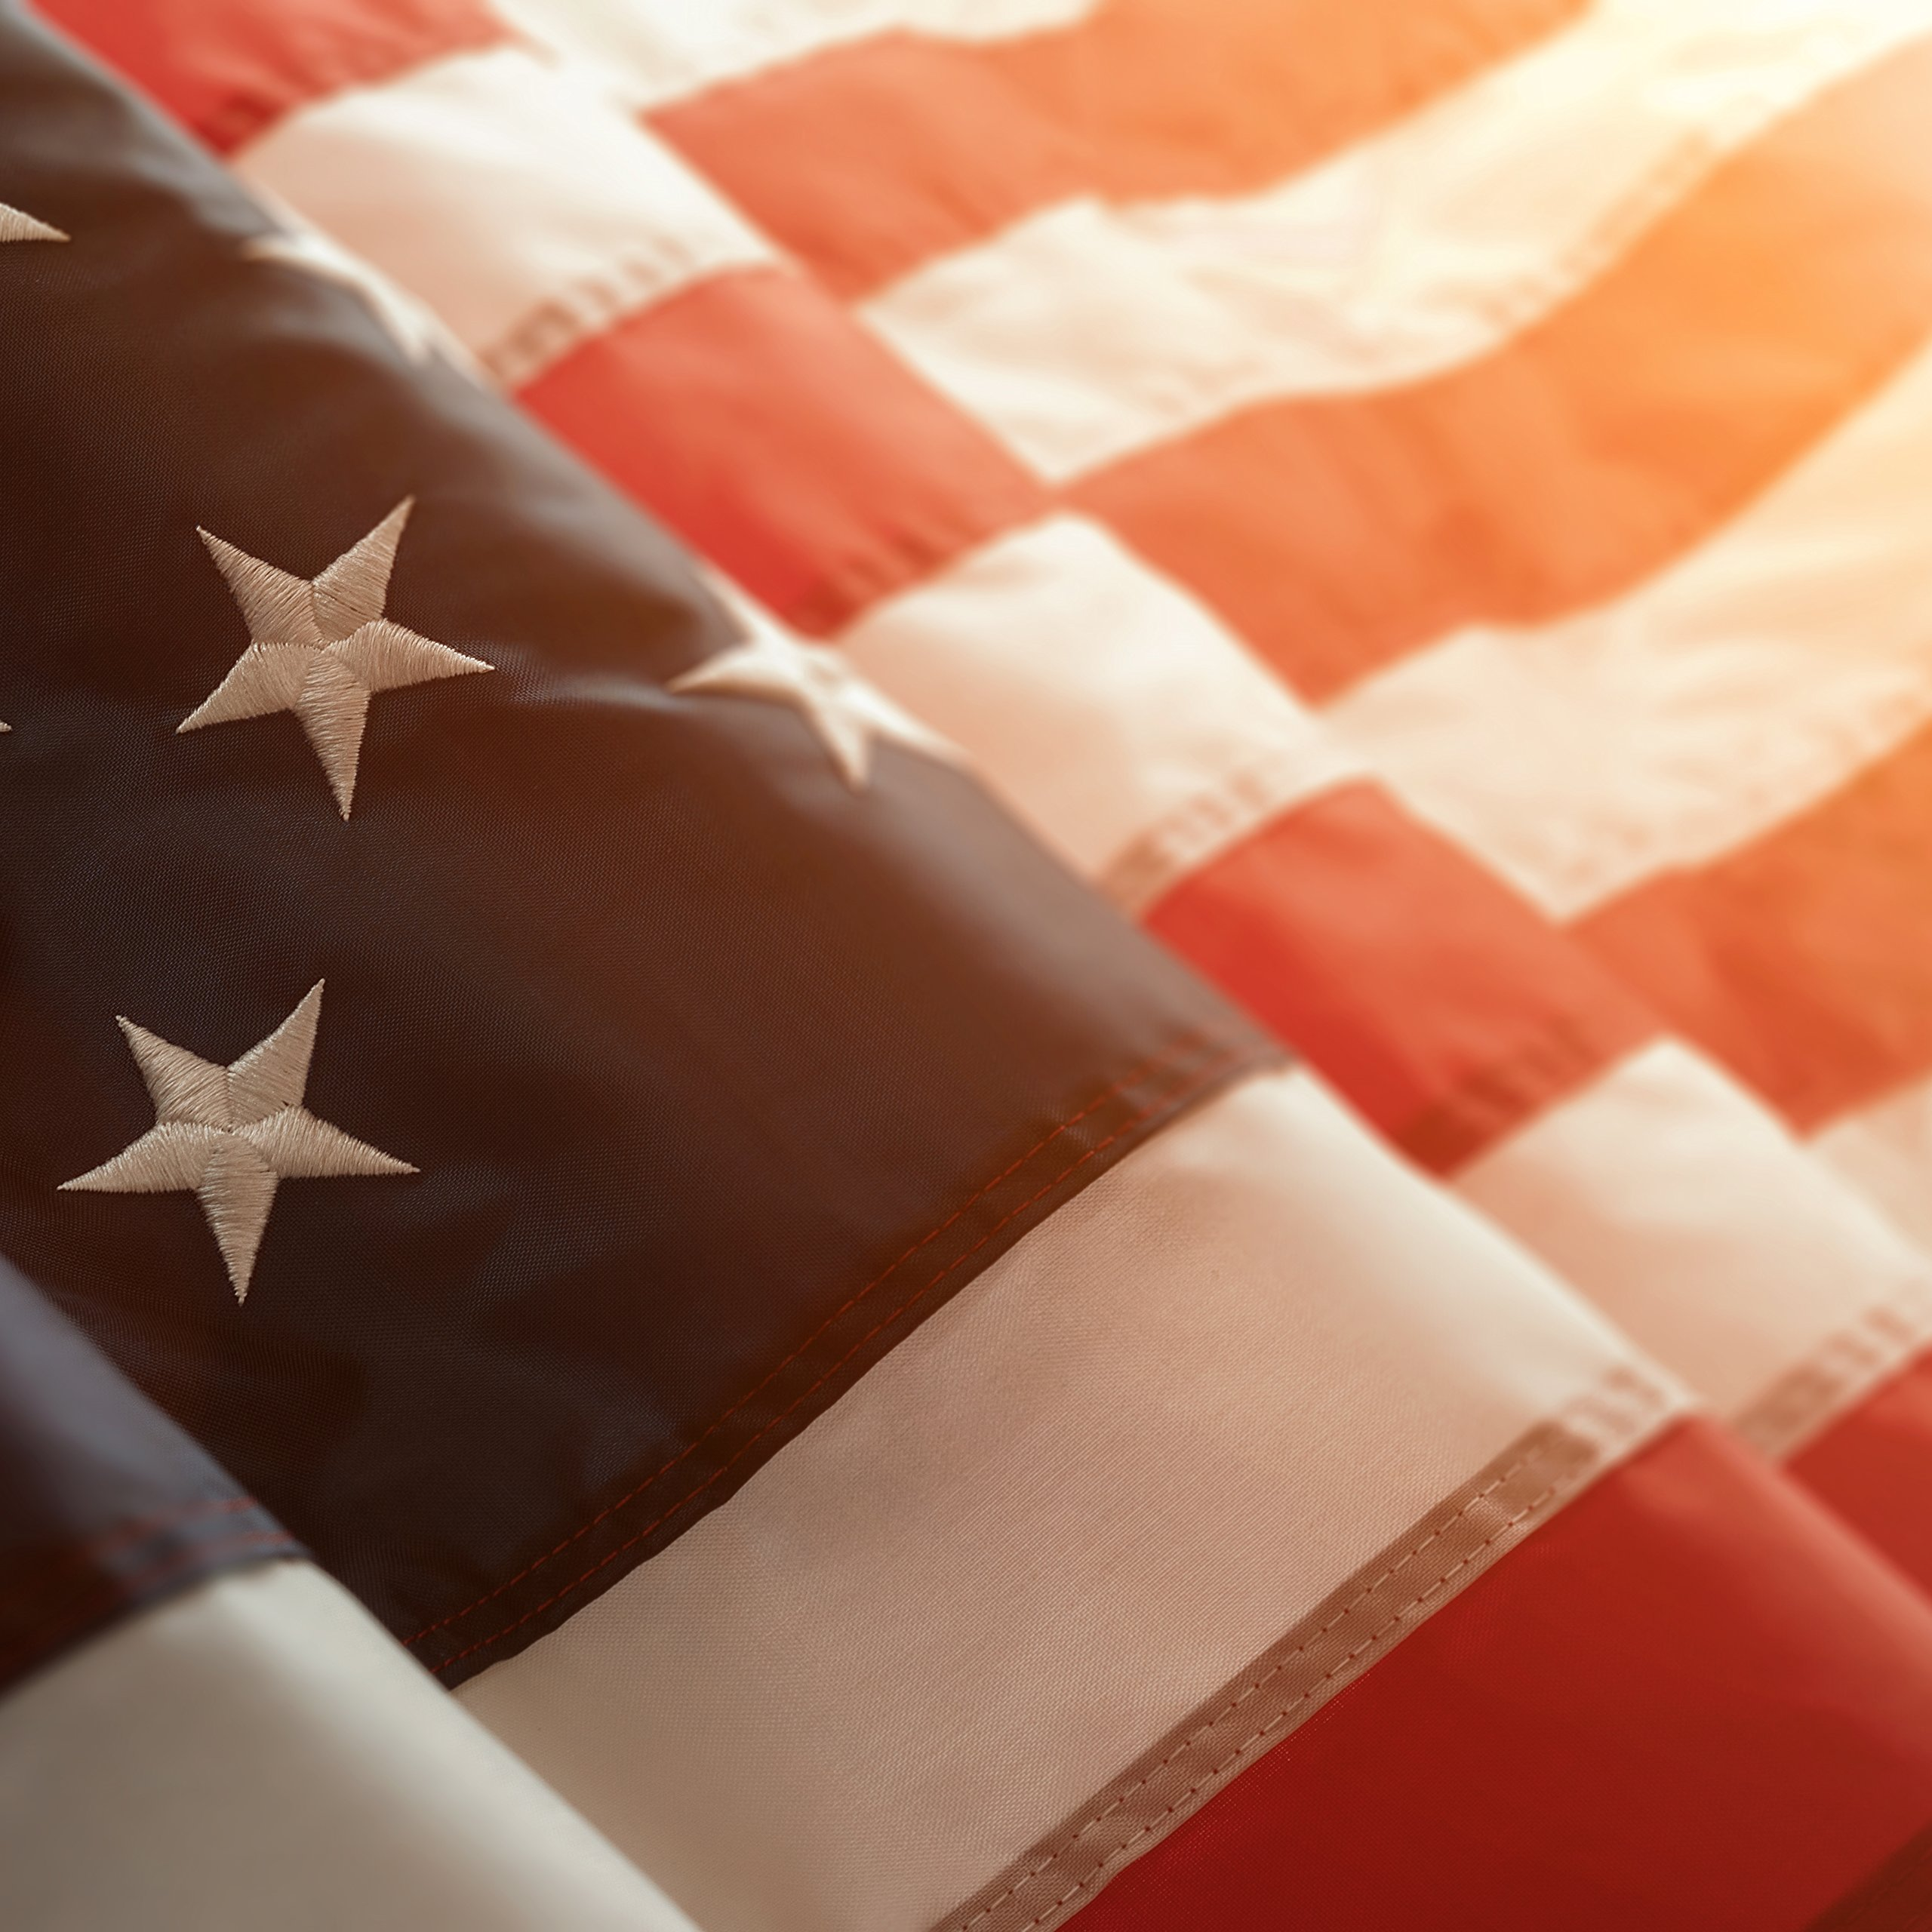 Deneve Outdoor American Flag, American Made 4x6 Ft. US Flag, Made In Midwest USA, With Embroidered Stars, Sewn Stripes, Brass Grommets Does Not Include Flag Pole